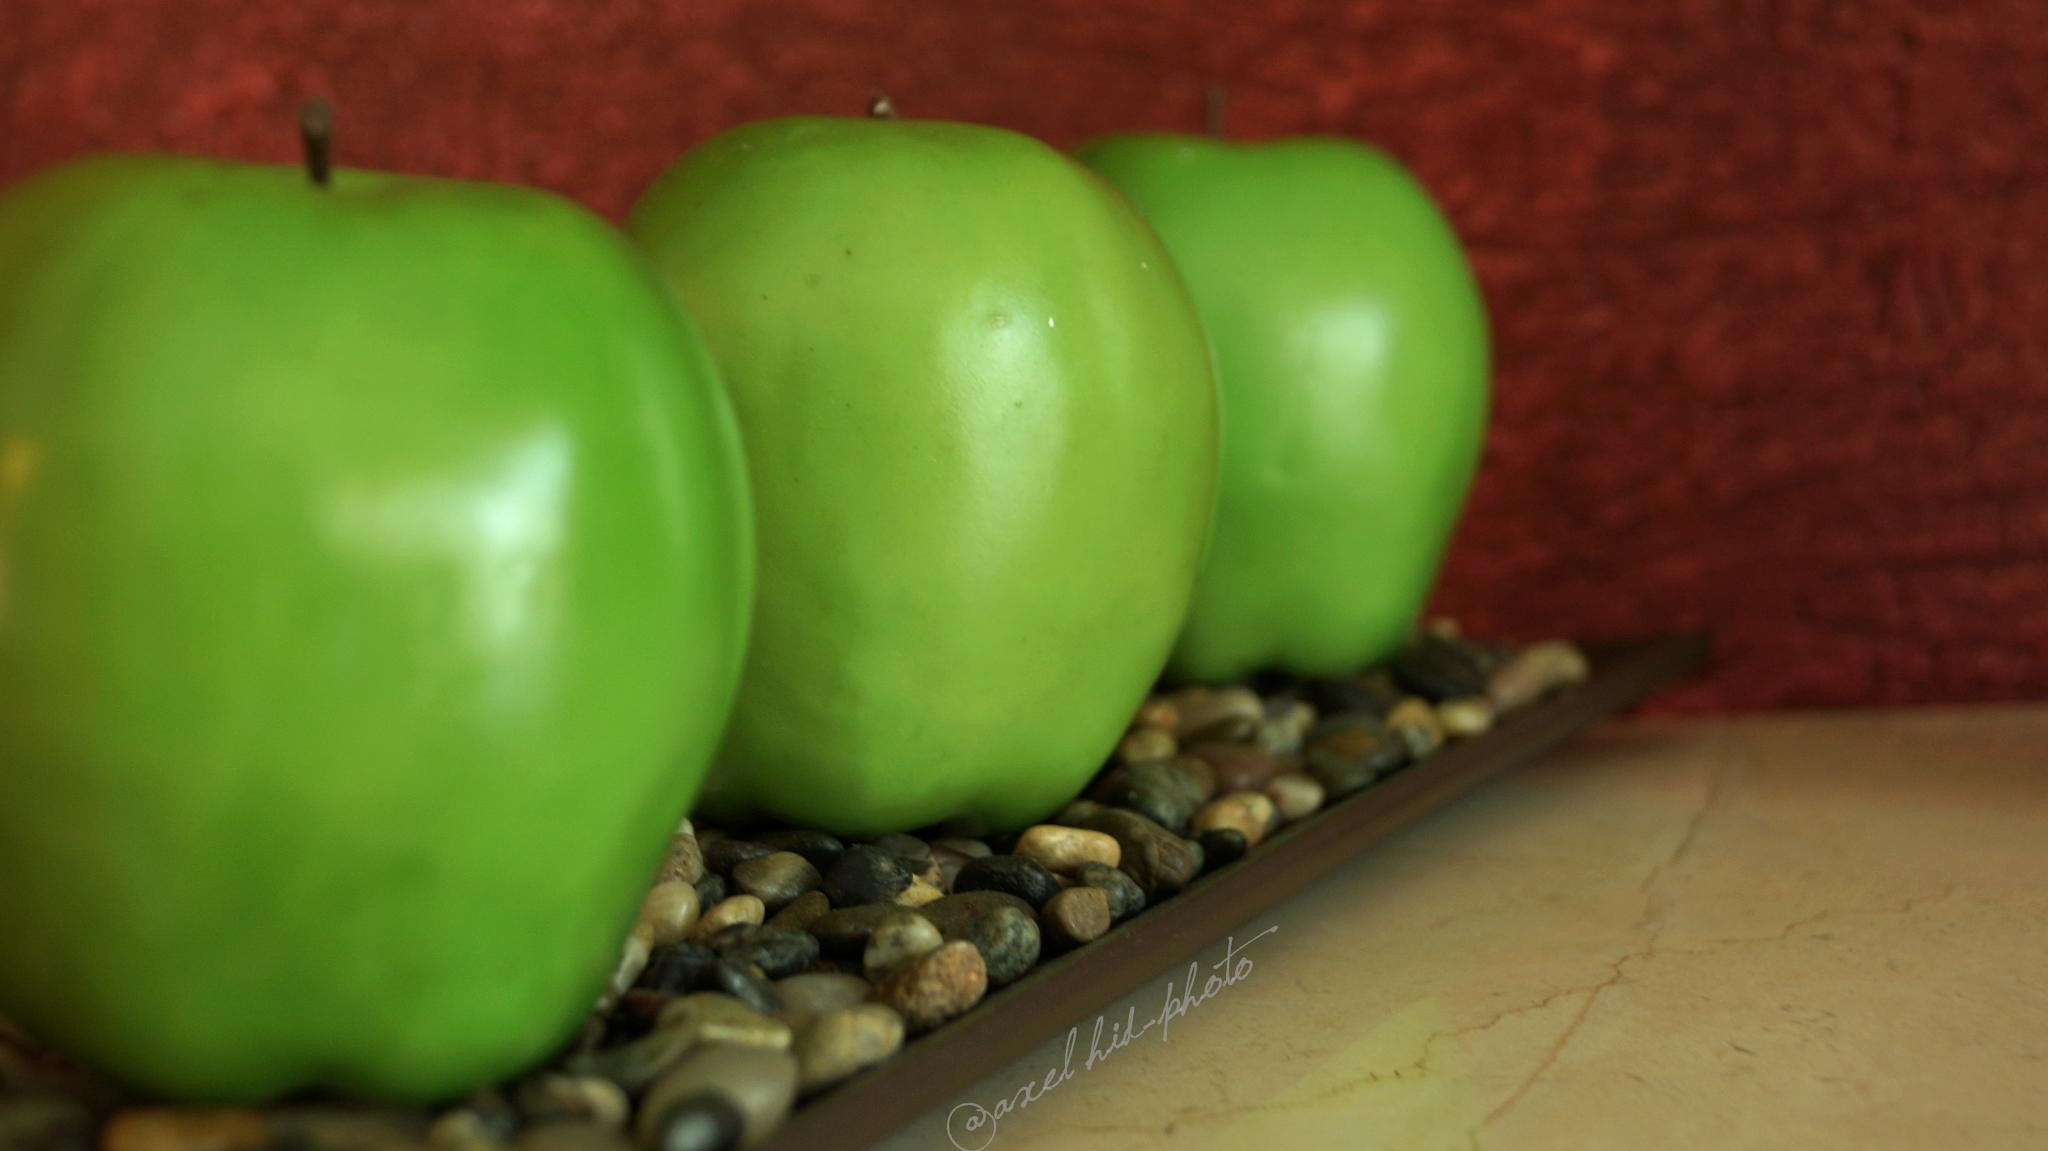 green apples by @axel hid-photo